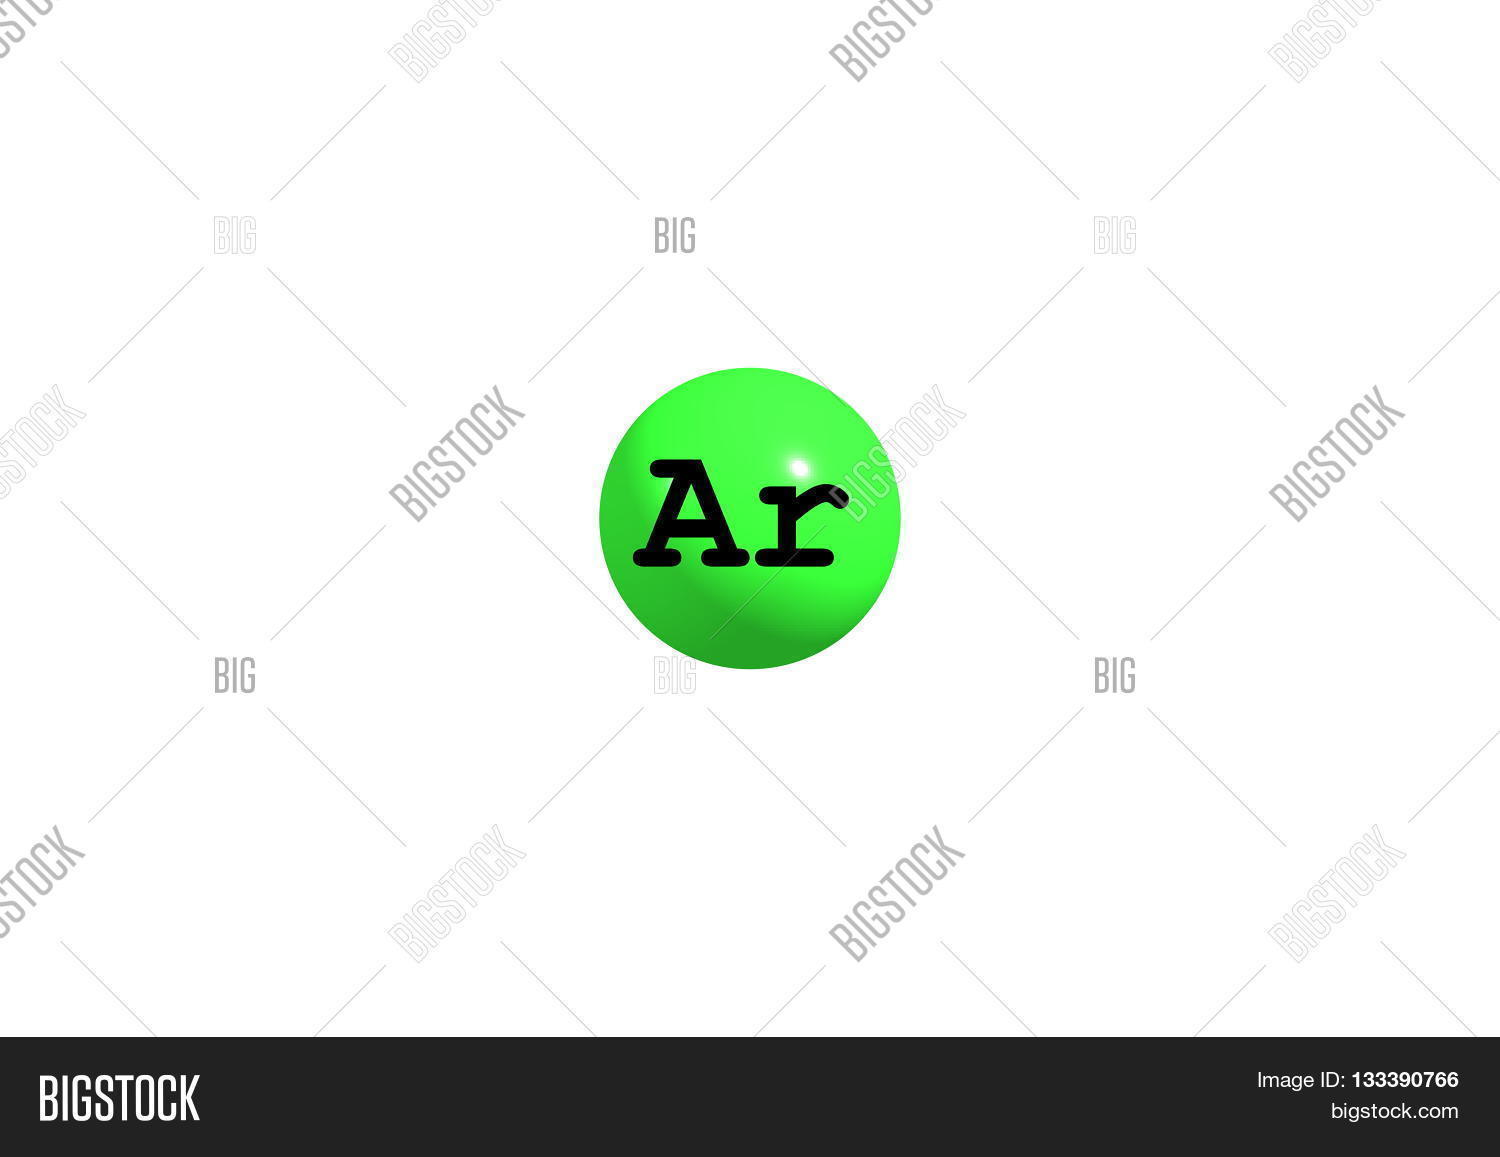 Argon Chemical Element Image Photo Free Trial Bigstock